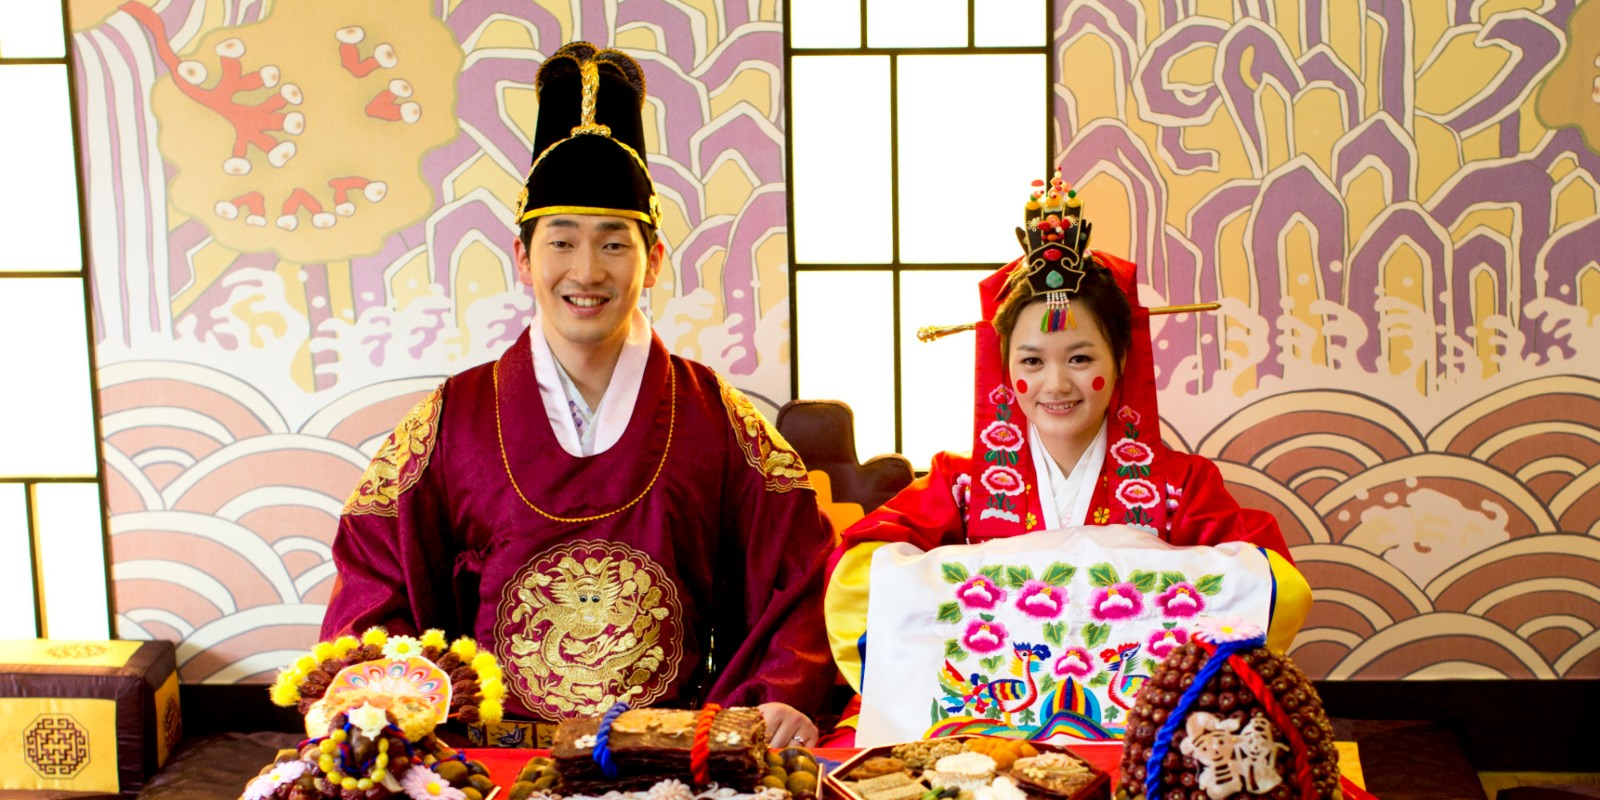 Korean Wedding Traditions A Union Of Two Families